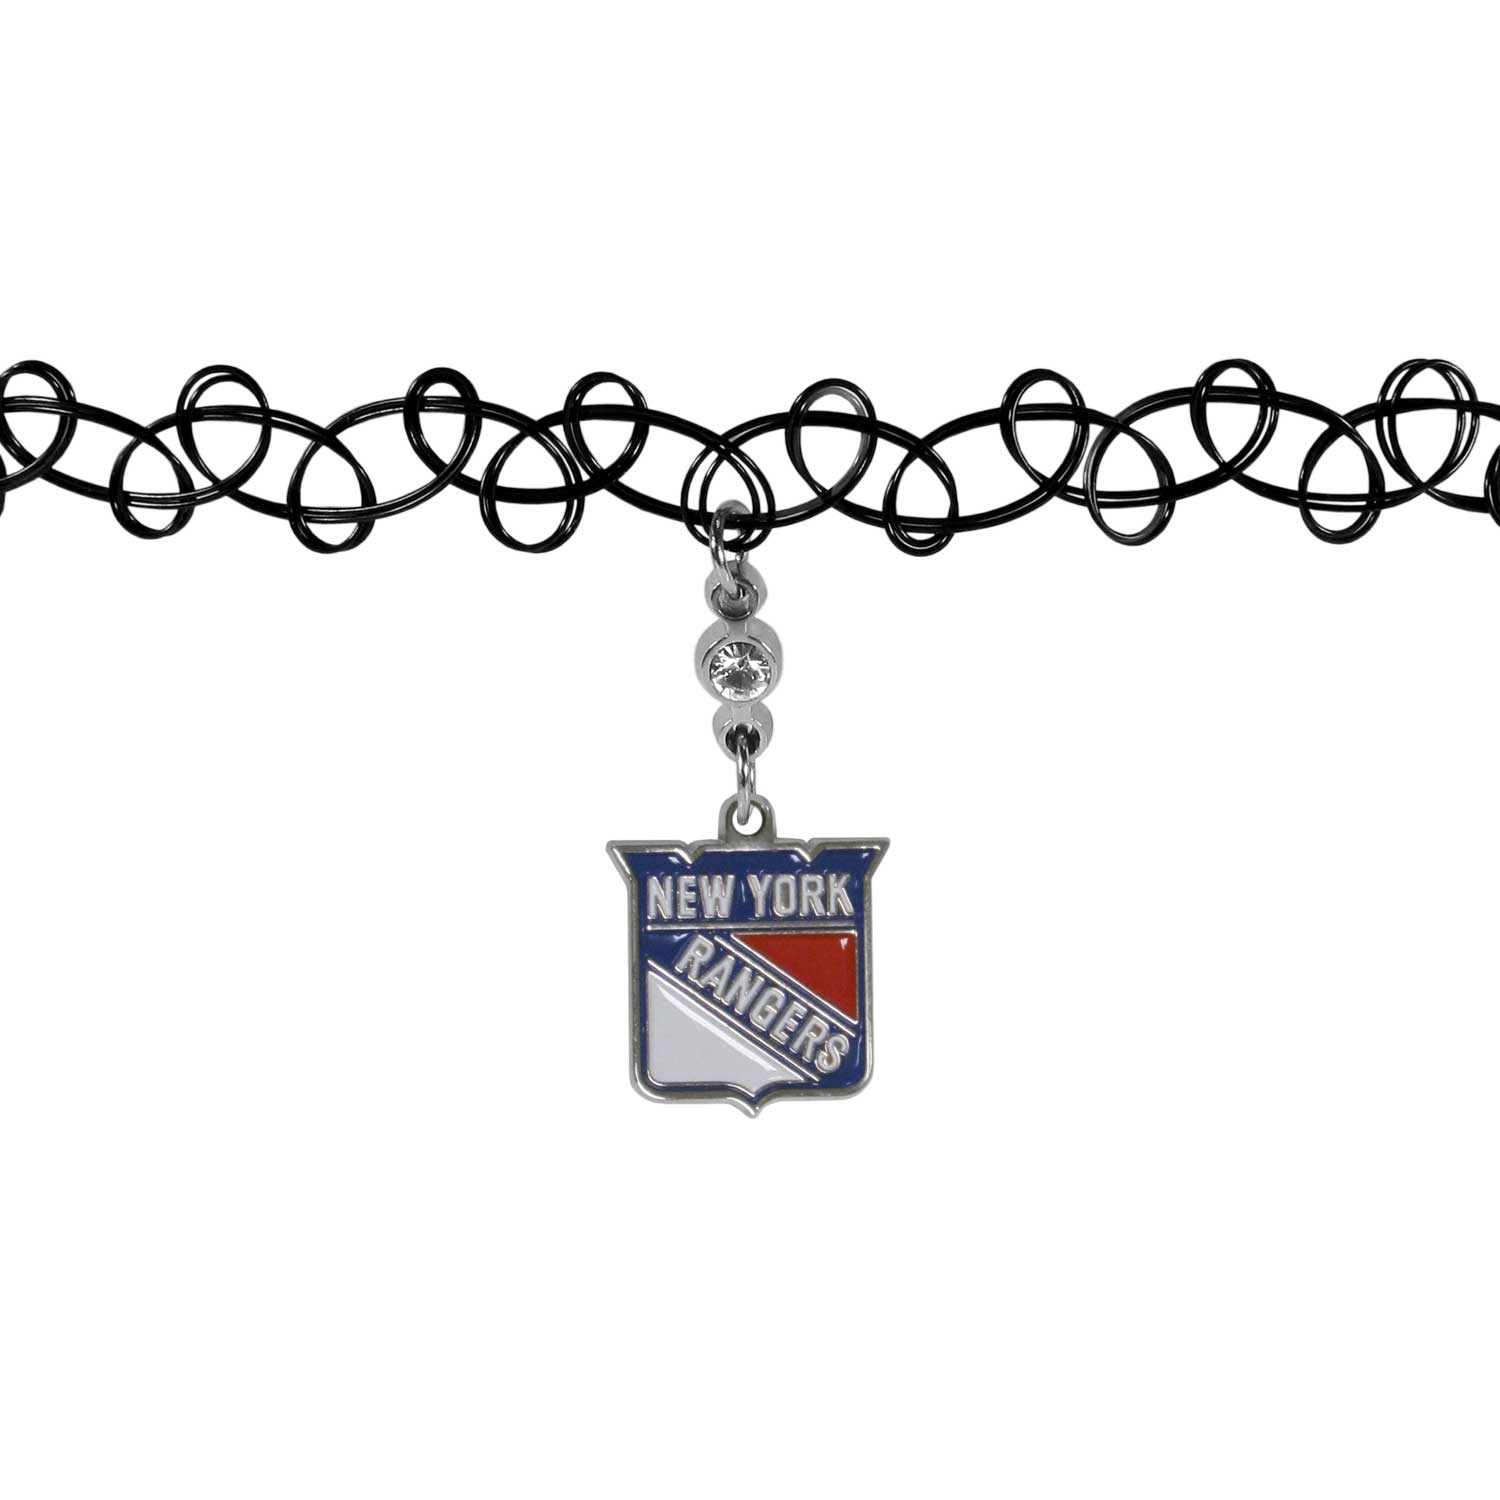 New York Rangers® Knotted Choker - This retro, knotted choker is a cool and unique piece of fan jewelry. The tattoo style choker features a high polish New York Rangers® charm with rhinestone accents.